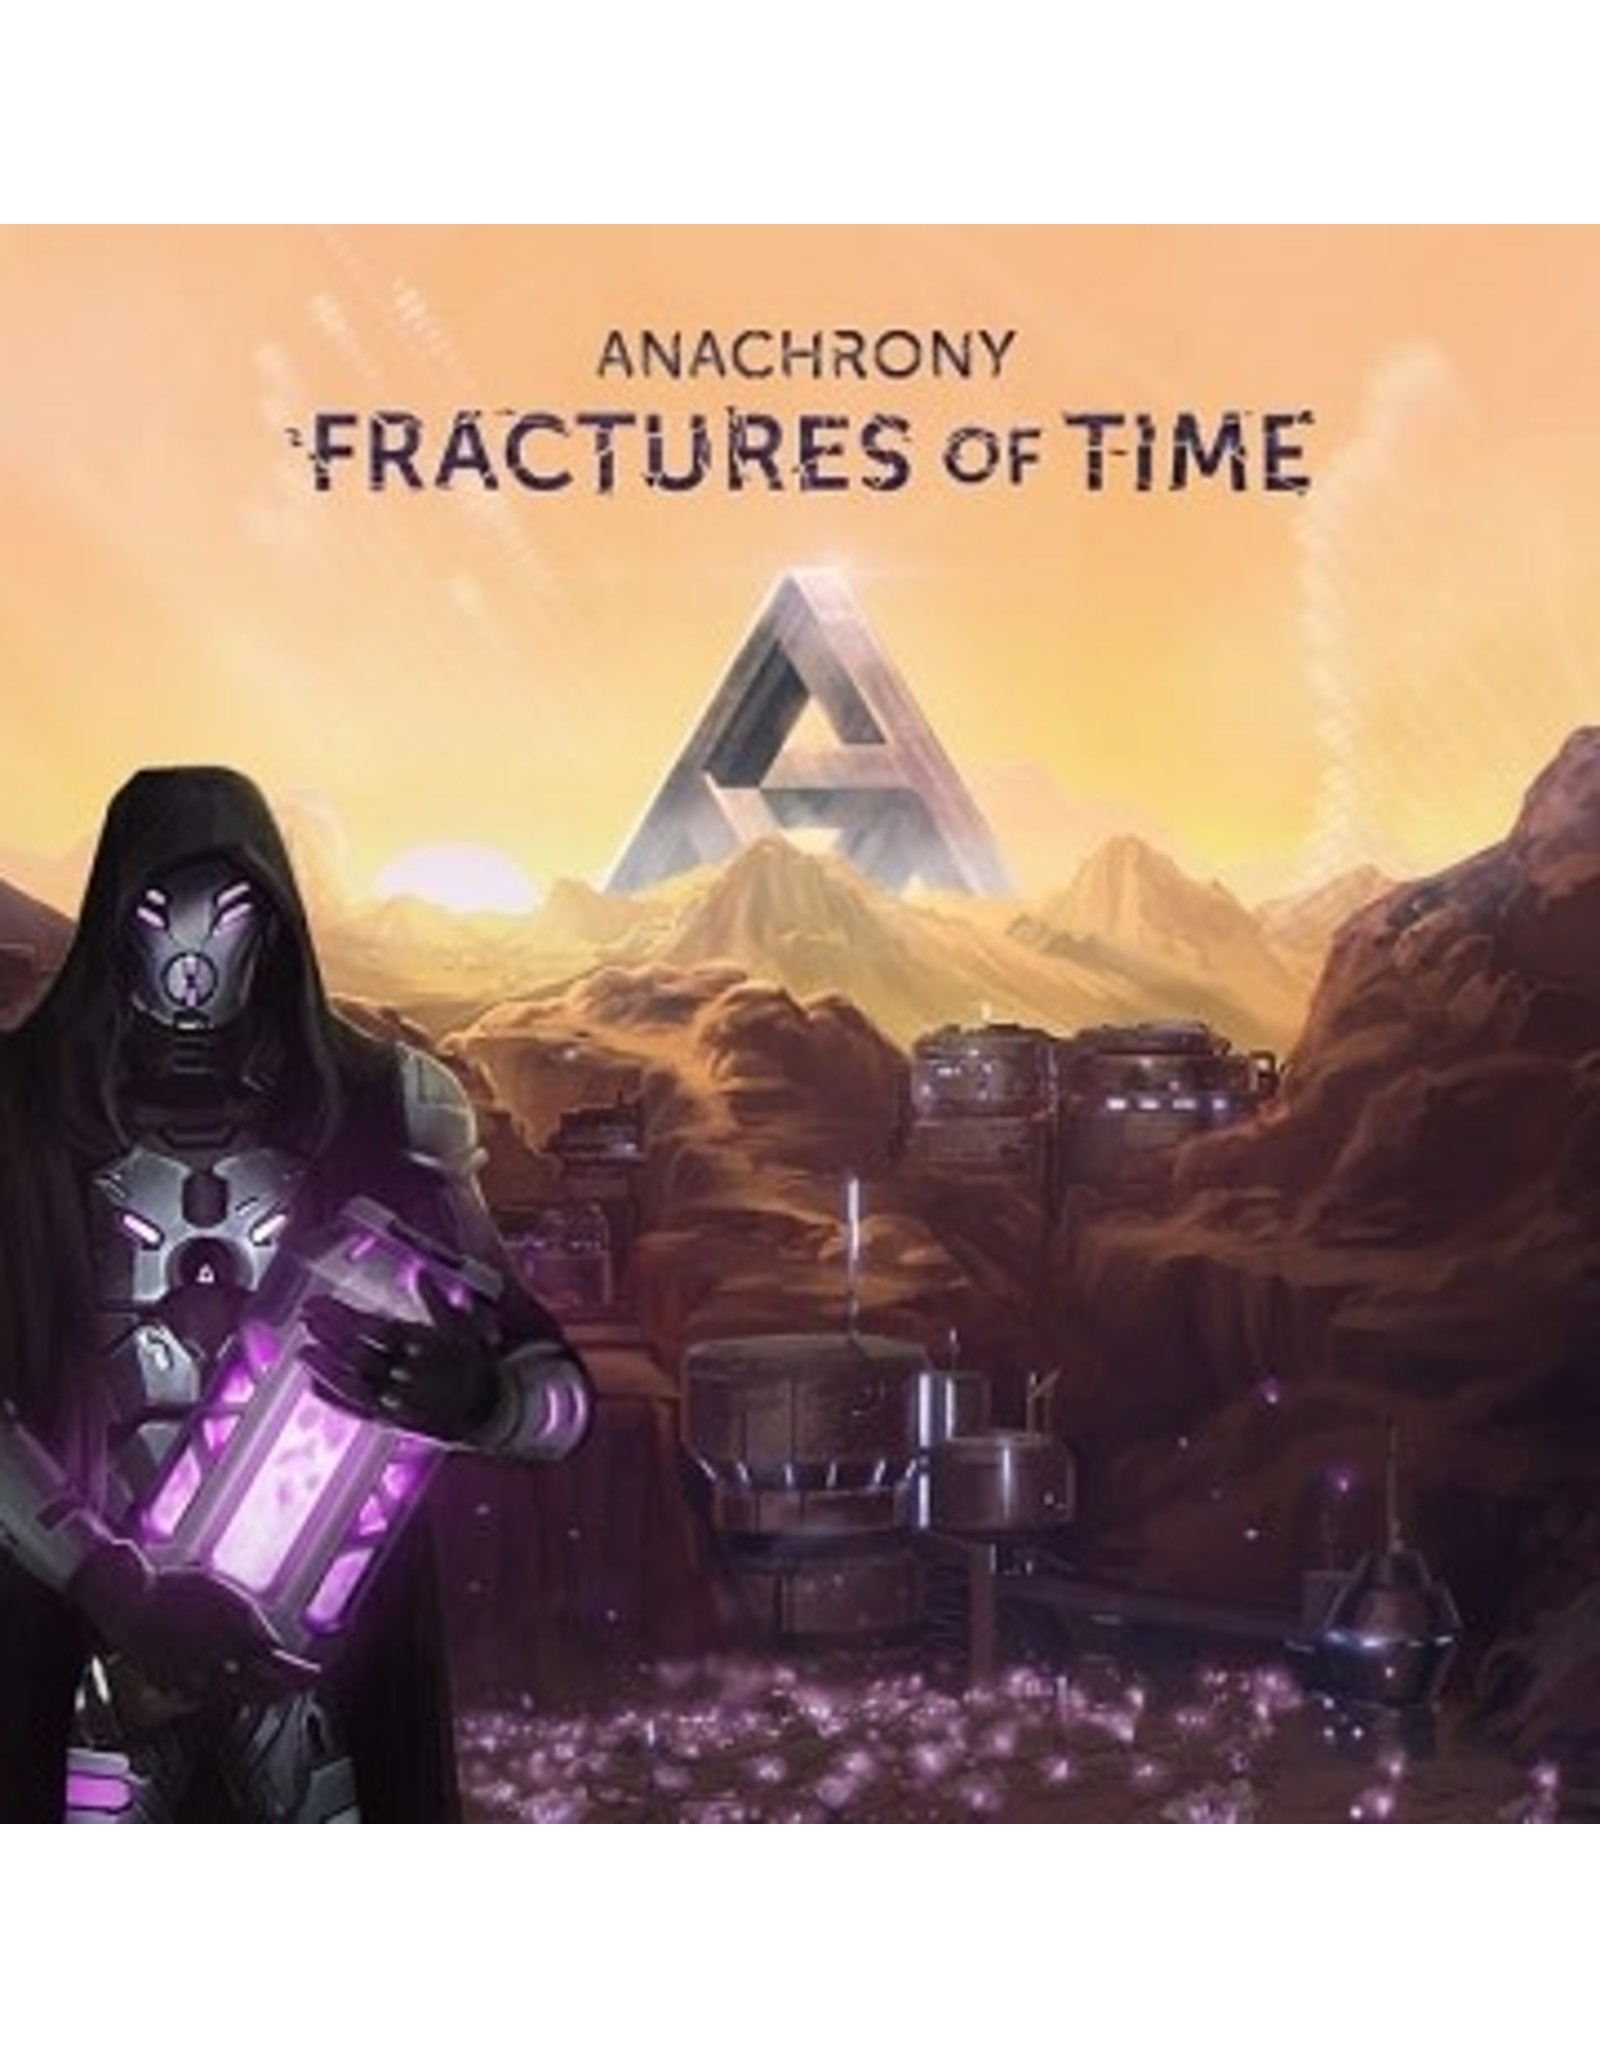 ANACHRONY FRACTURES OF TIME